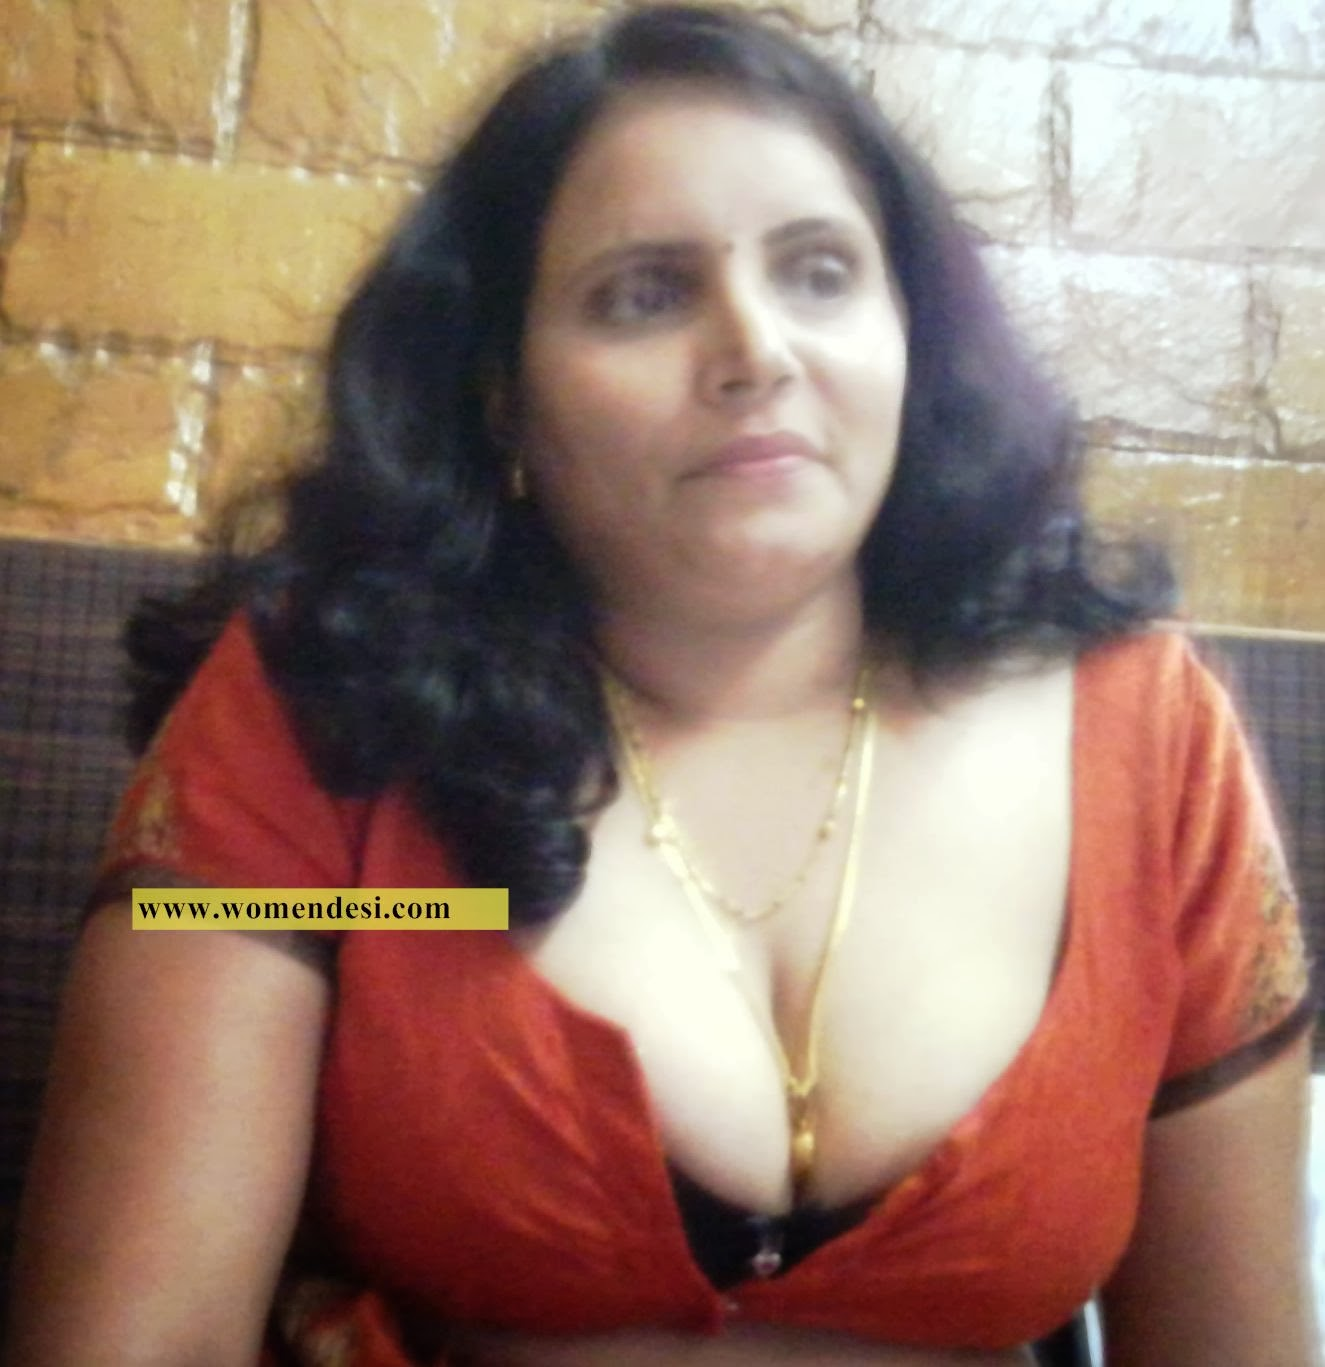 Too. What telugu aunties sex pics has